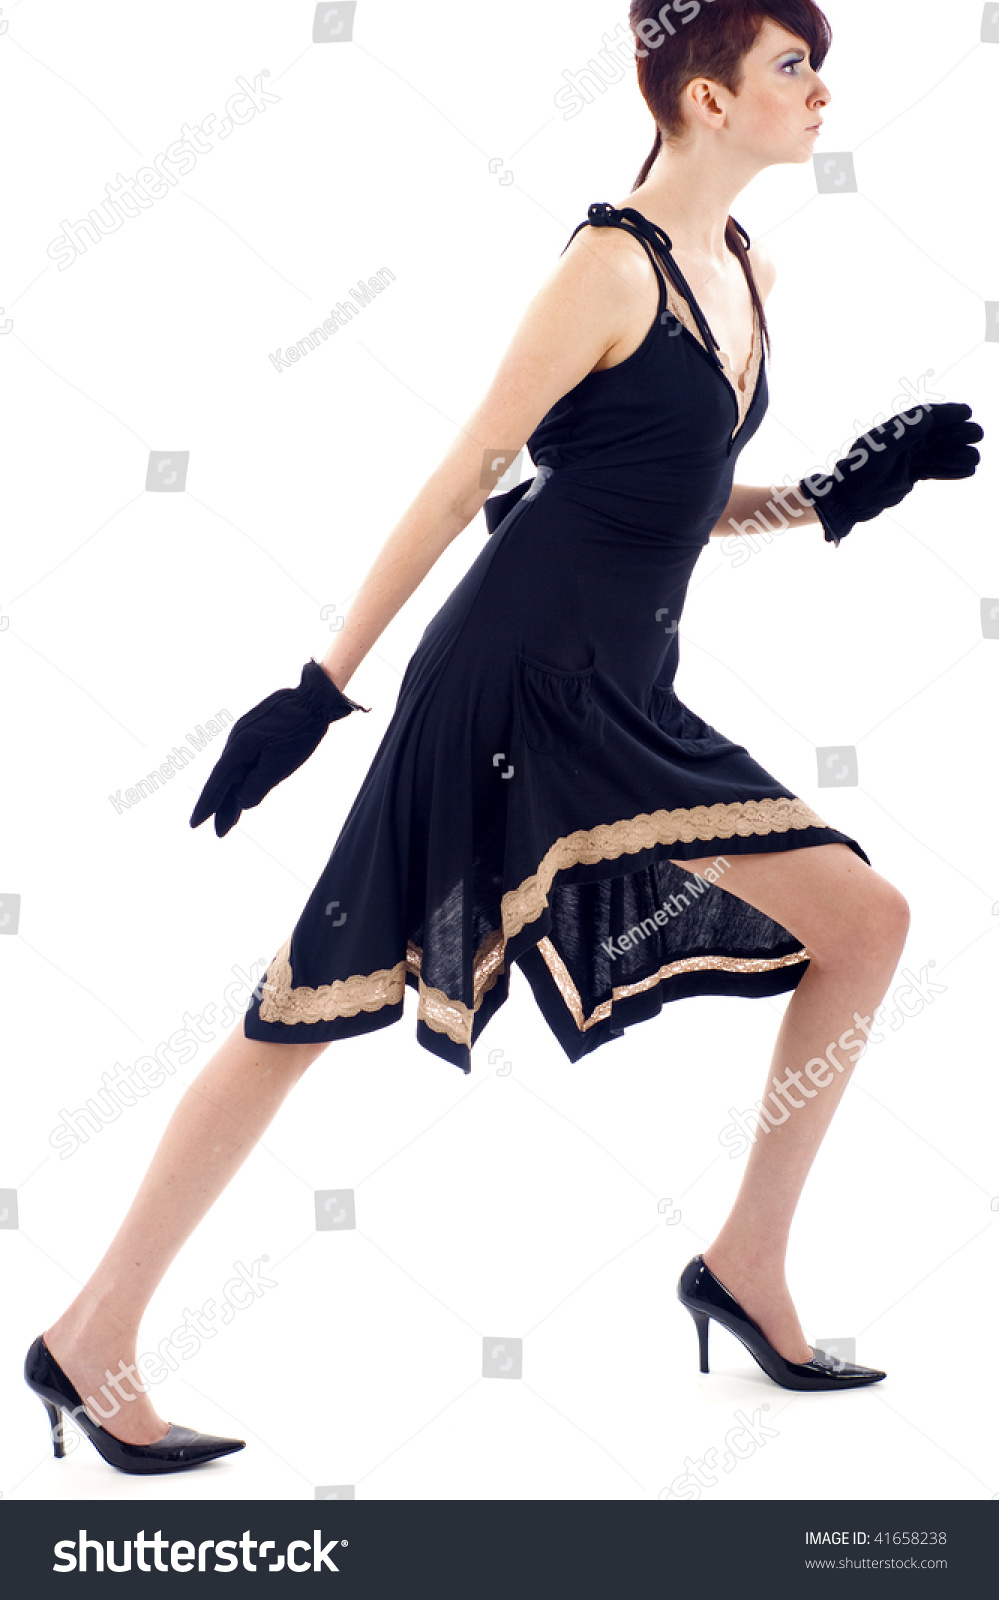 Fashion Model Walking Royalty Free Stock Photo - Image ... |Fashion Model Walking